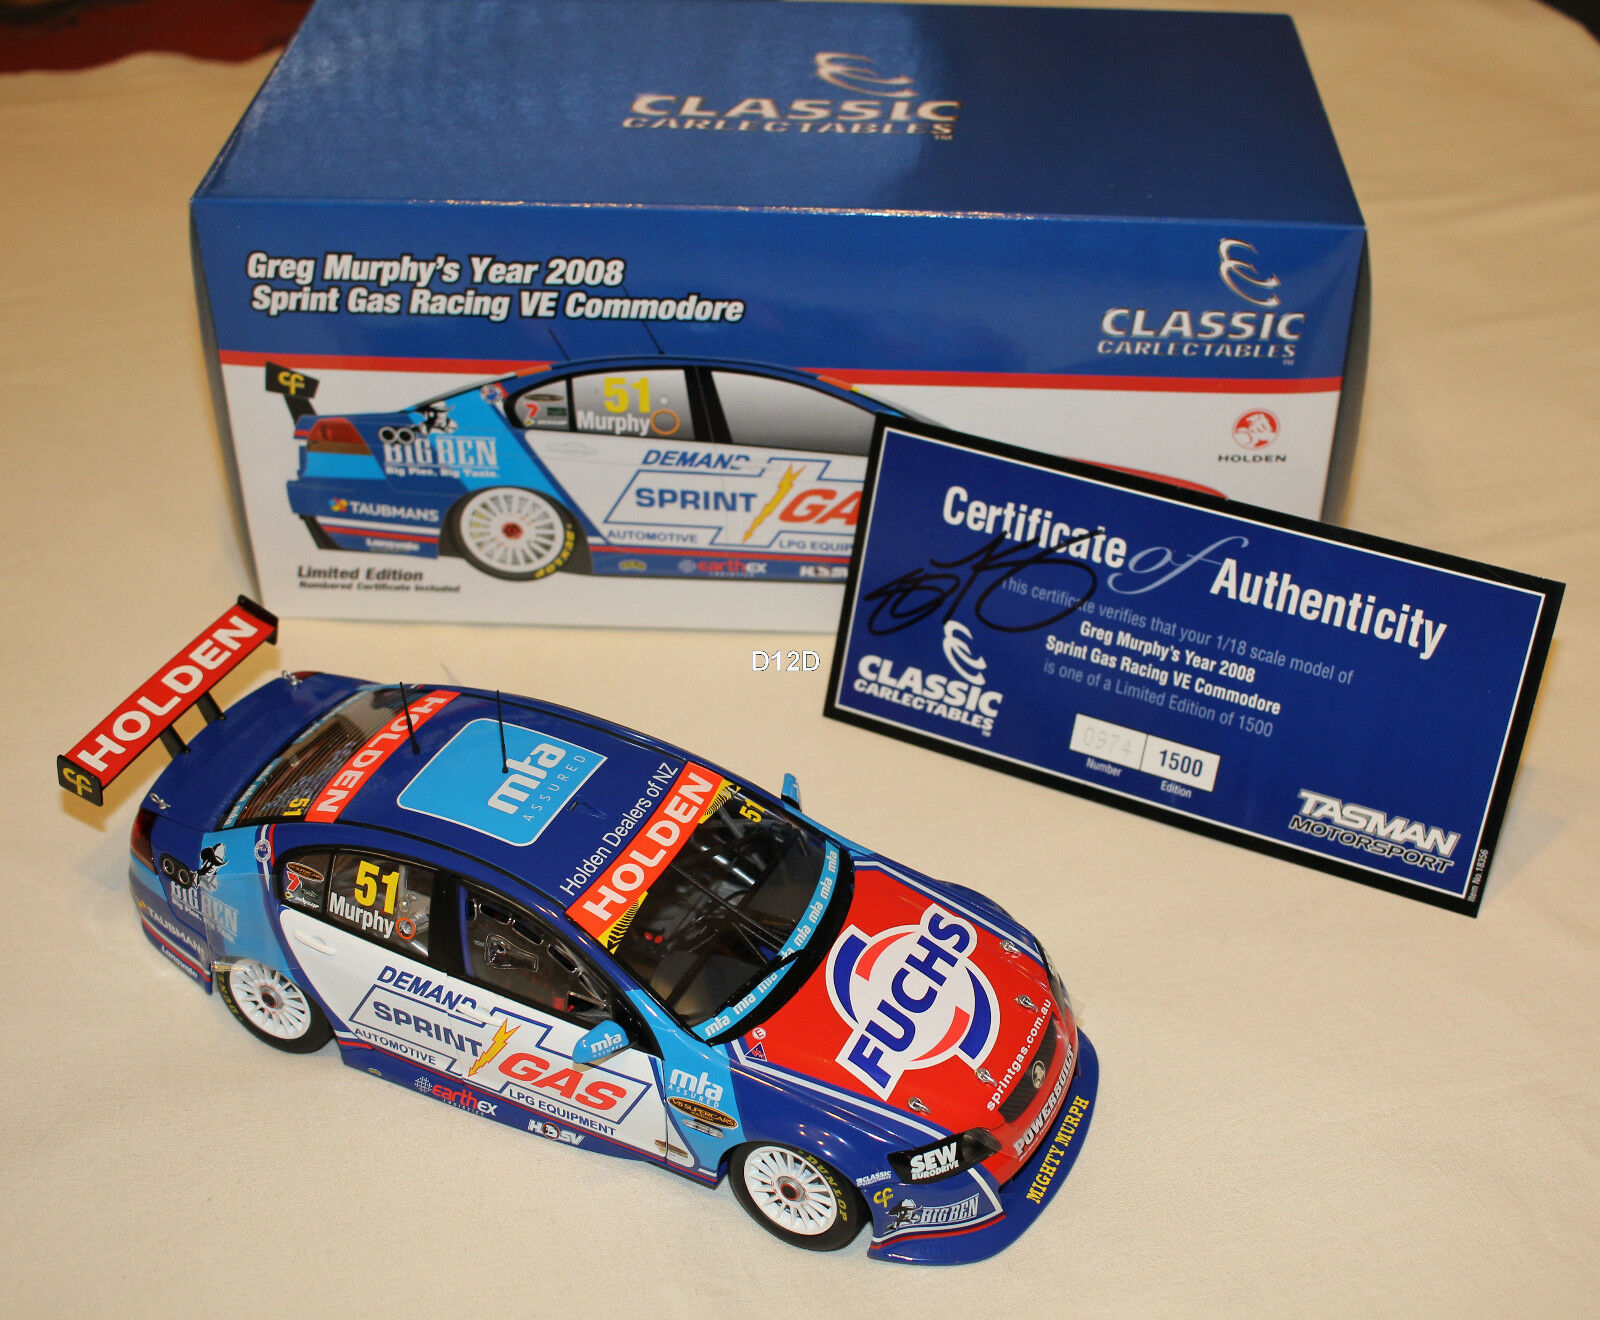 Greg Murphy 2008 Sprint Gas Racing Holden VE Commodore V8 Supercar 1 18